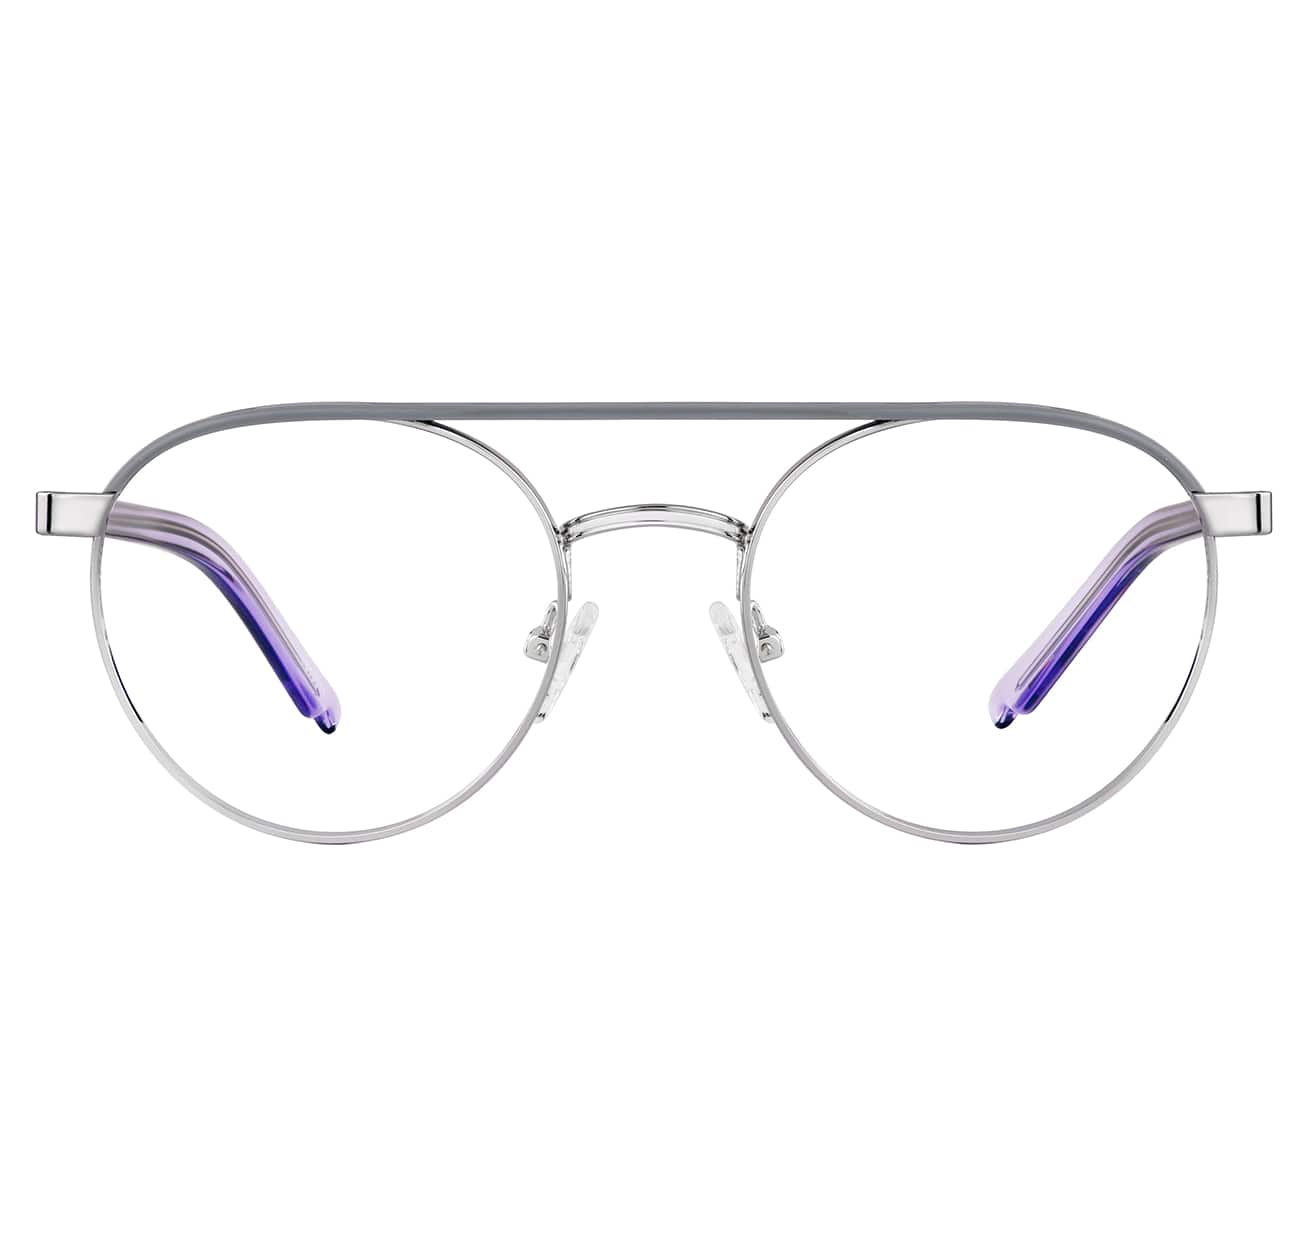 Image of Zenni silver aviator glasses #1913011 I am brave